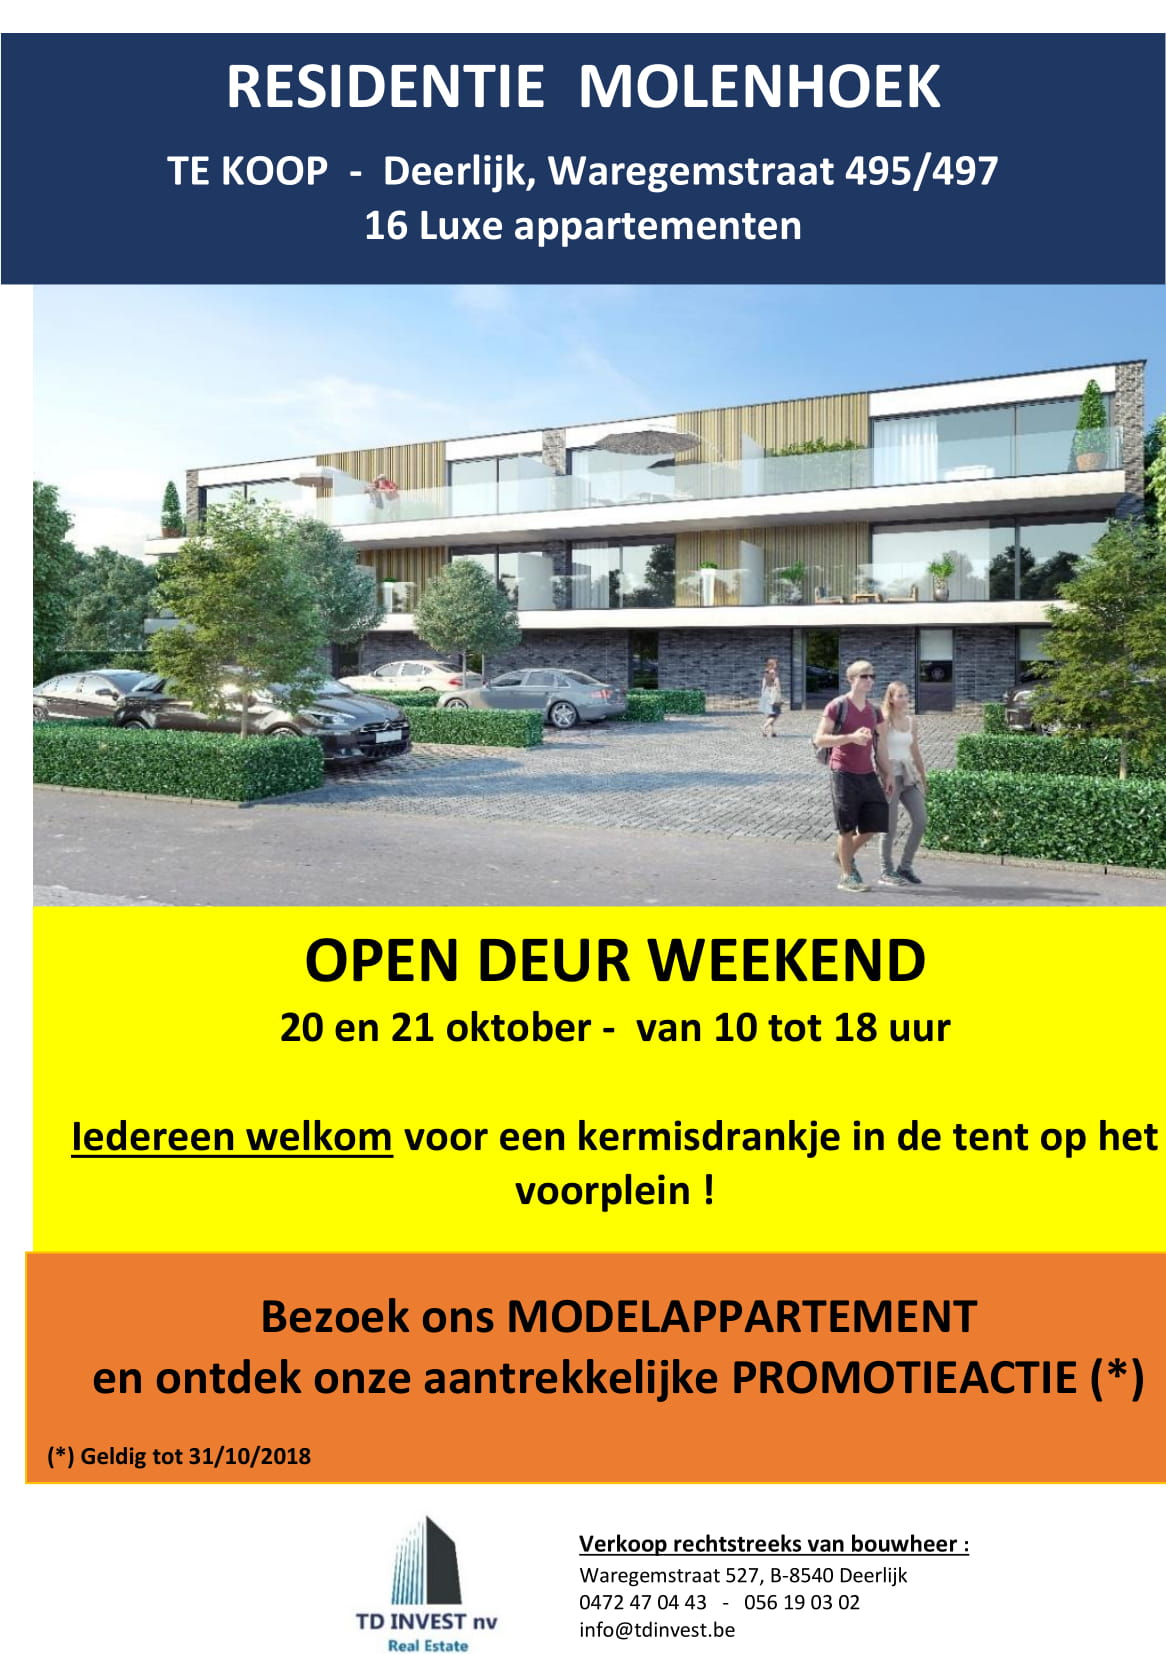 OPENDEUR WEEKEND 20 & 21 oktober!